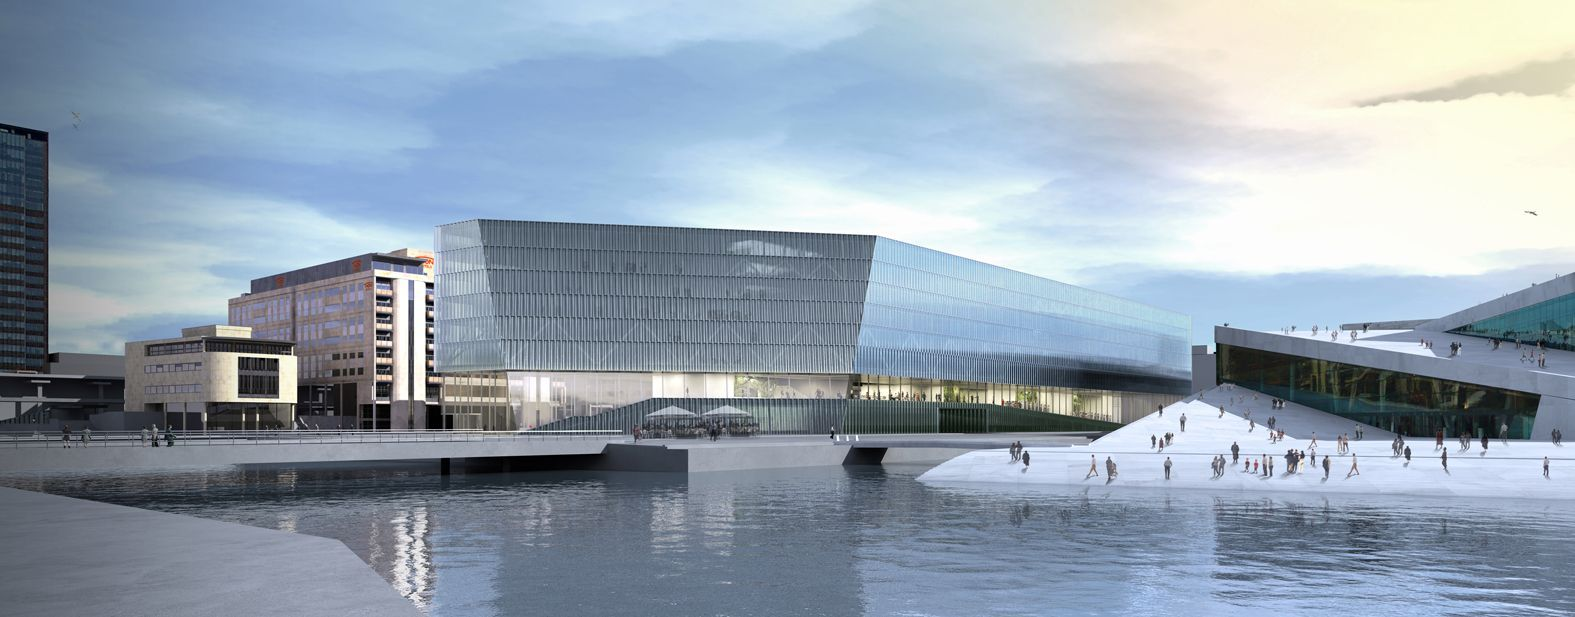 Gallery Of Munch Museum Deichman Library Competition